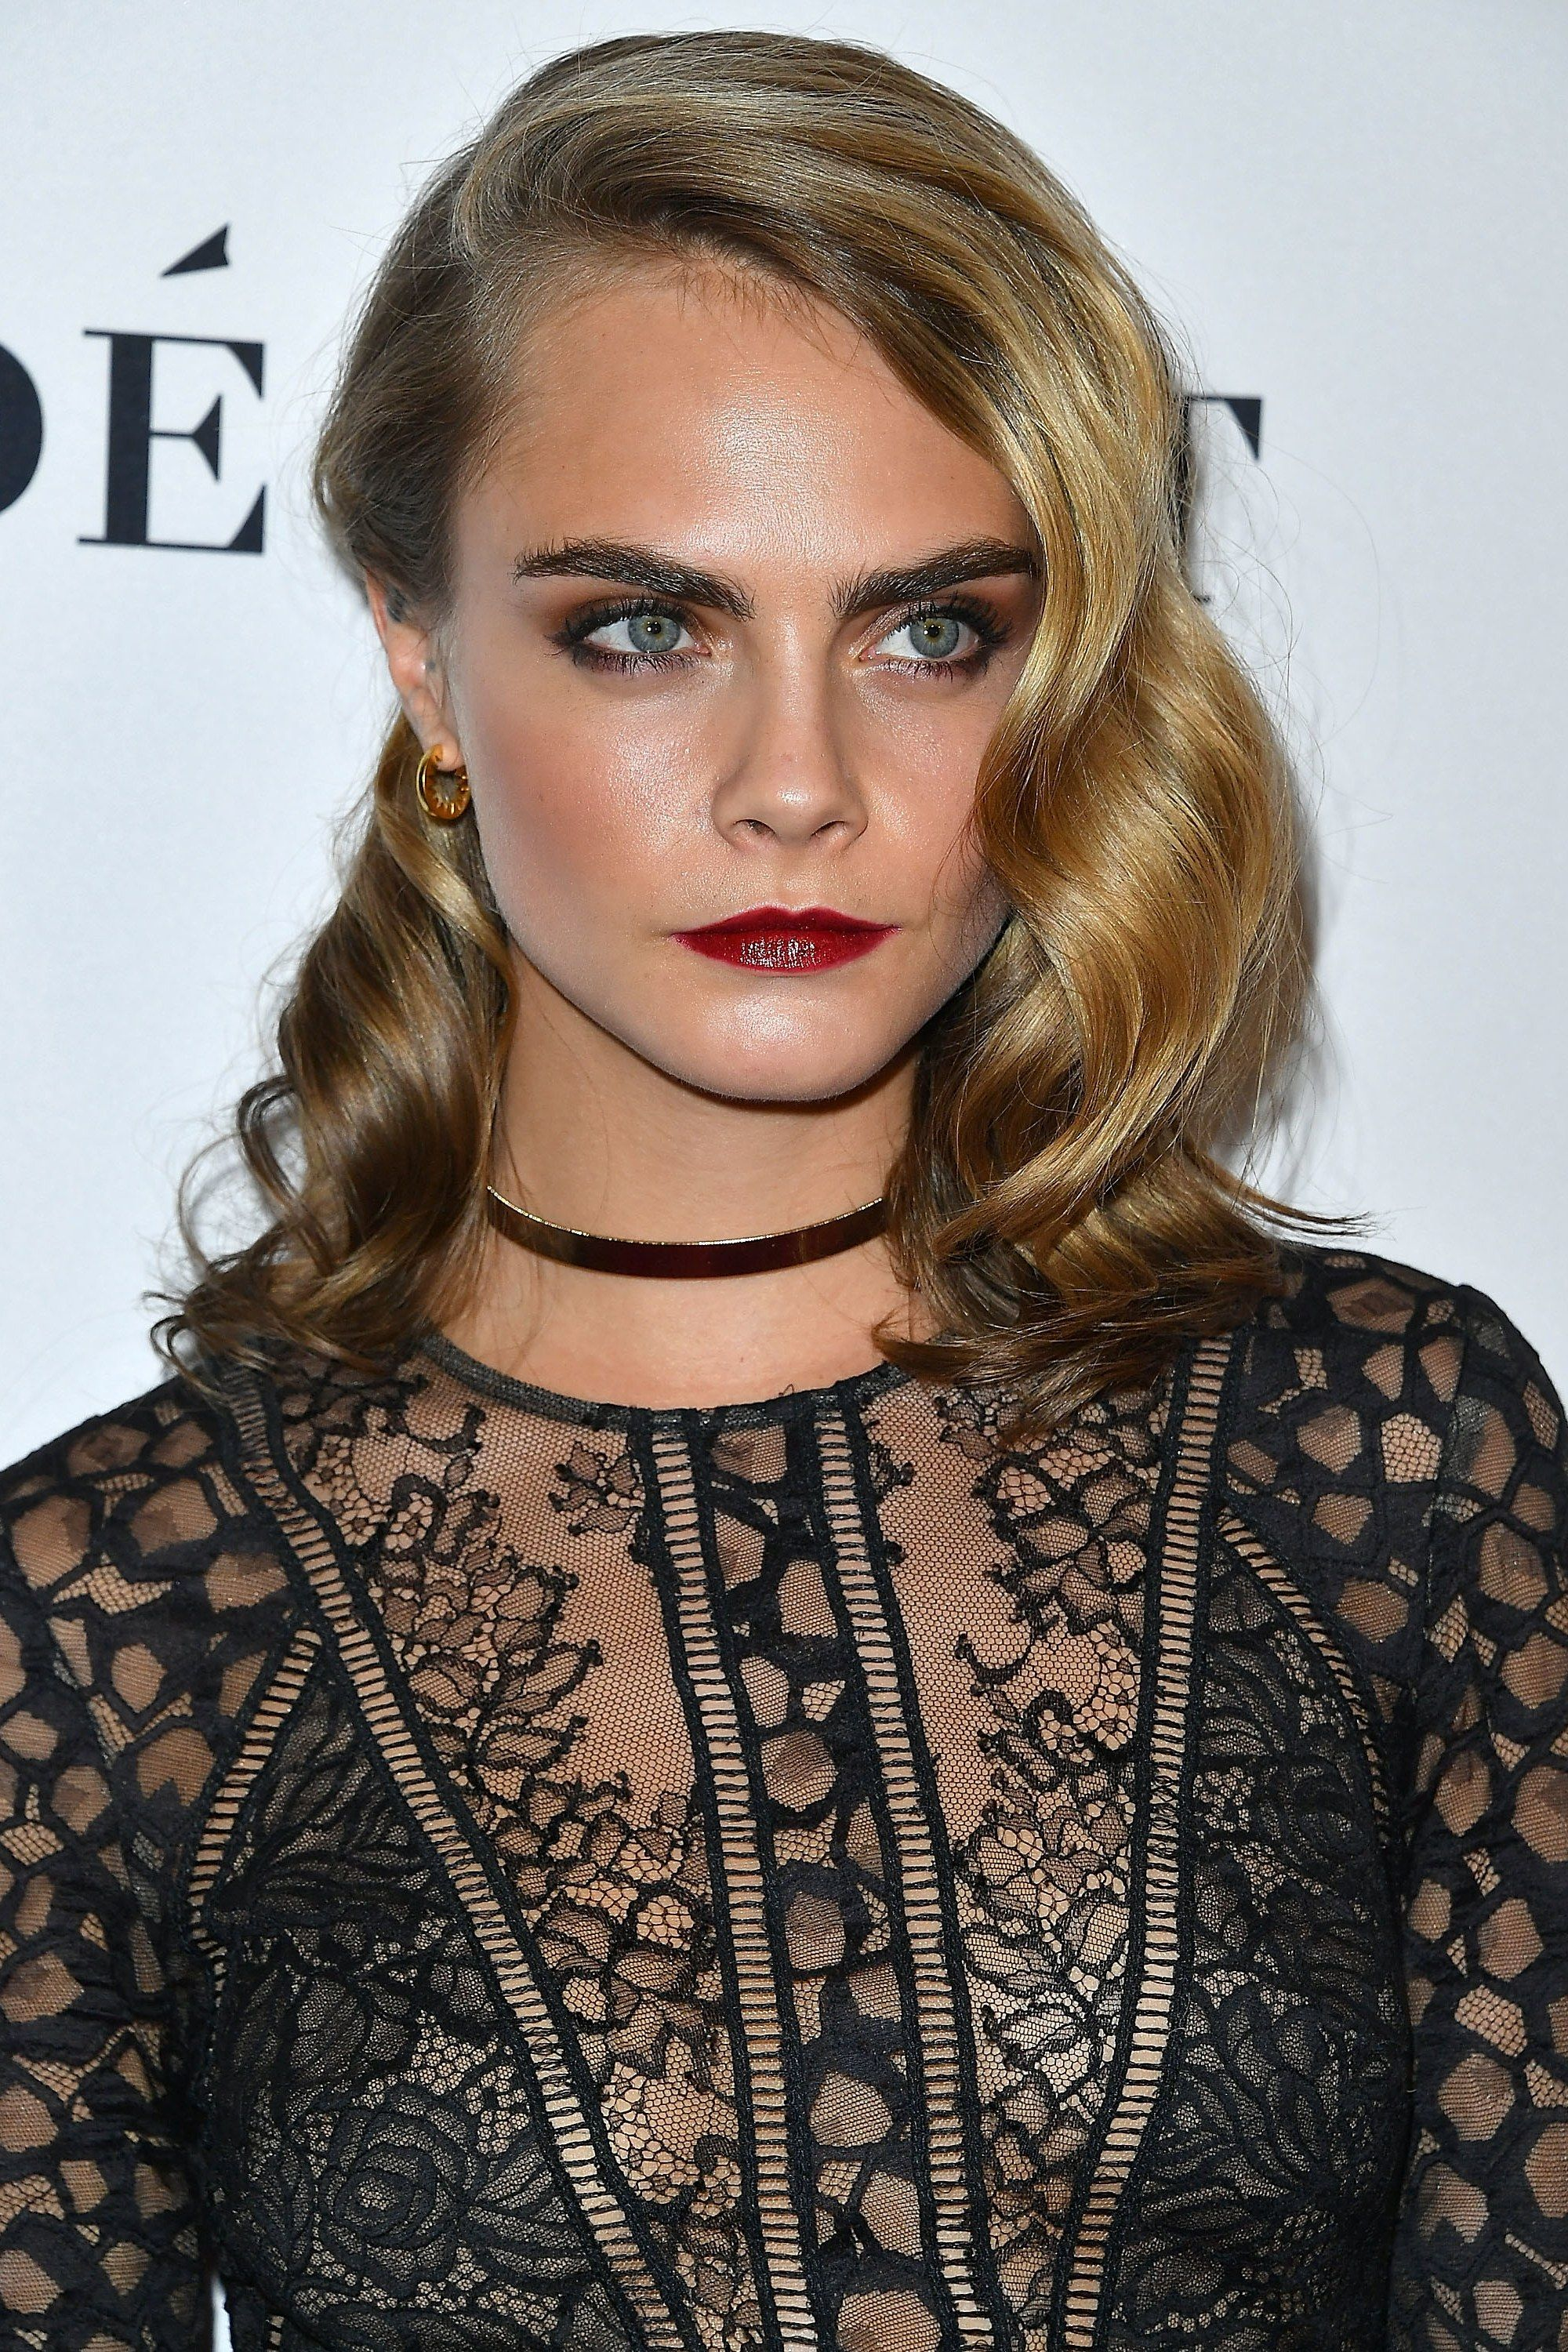 13 Actresses Who Should Totally Play The Little Mermaid Cara Delevingne Cara Delevingne Hair Short Hair Styles Pixie